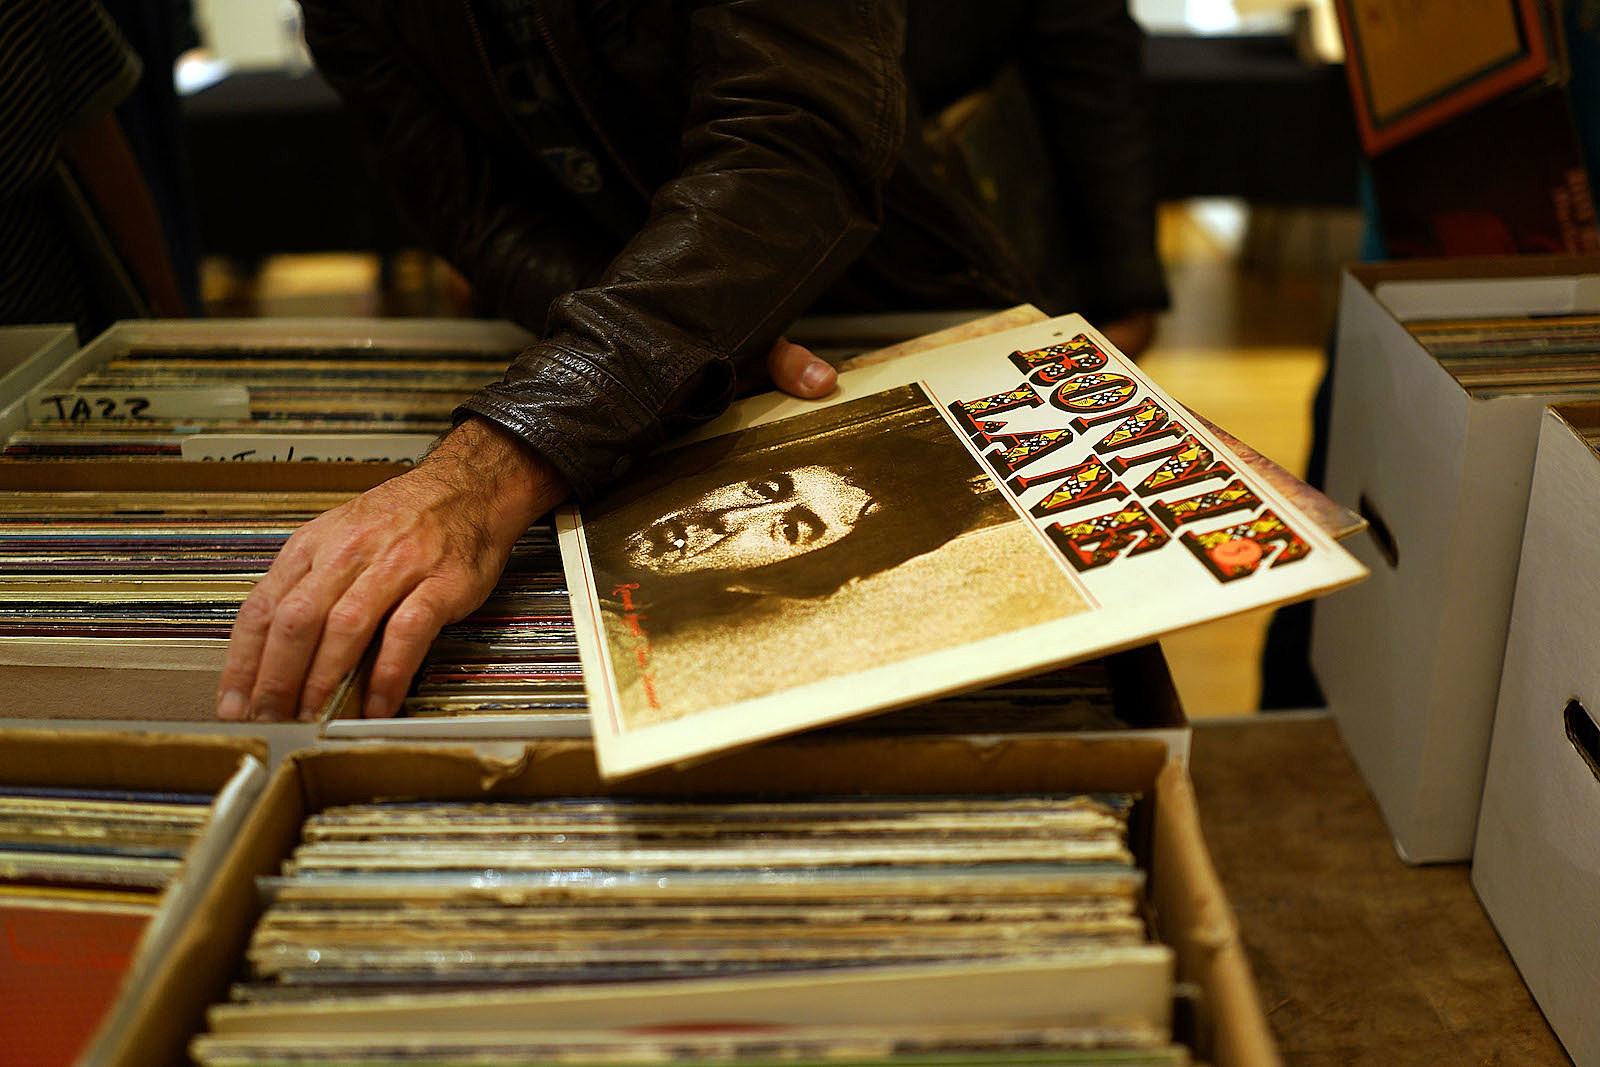 How Is the Resurgence of Vinyl Impacting Our Environment?